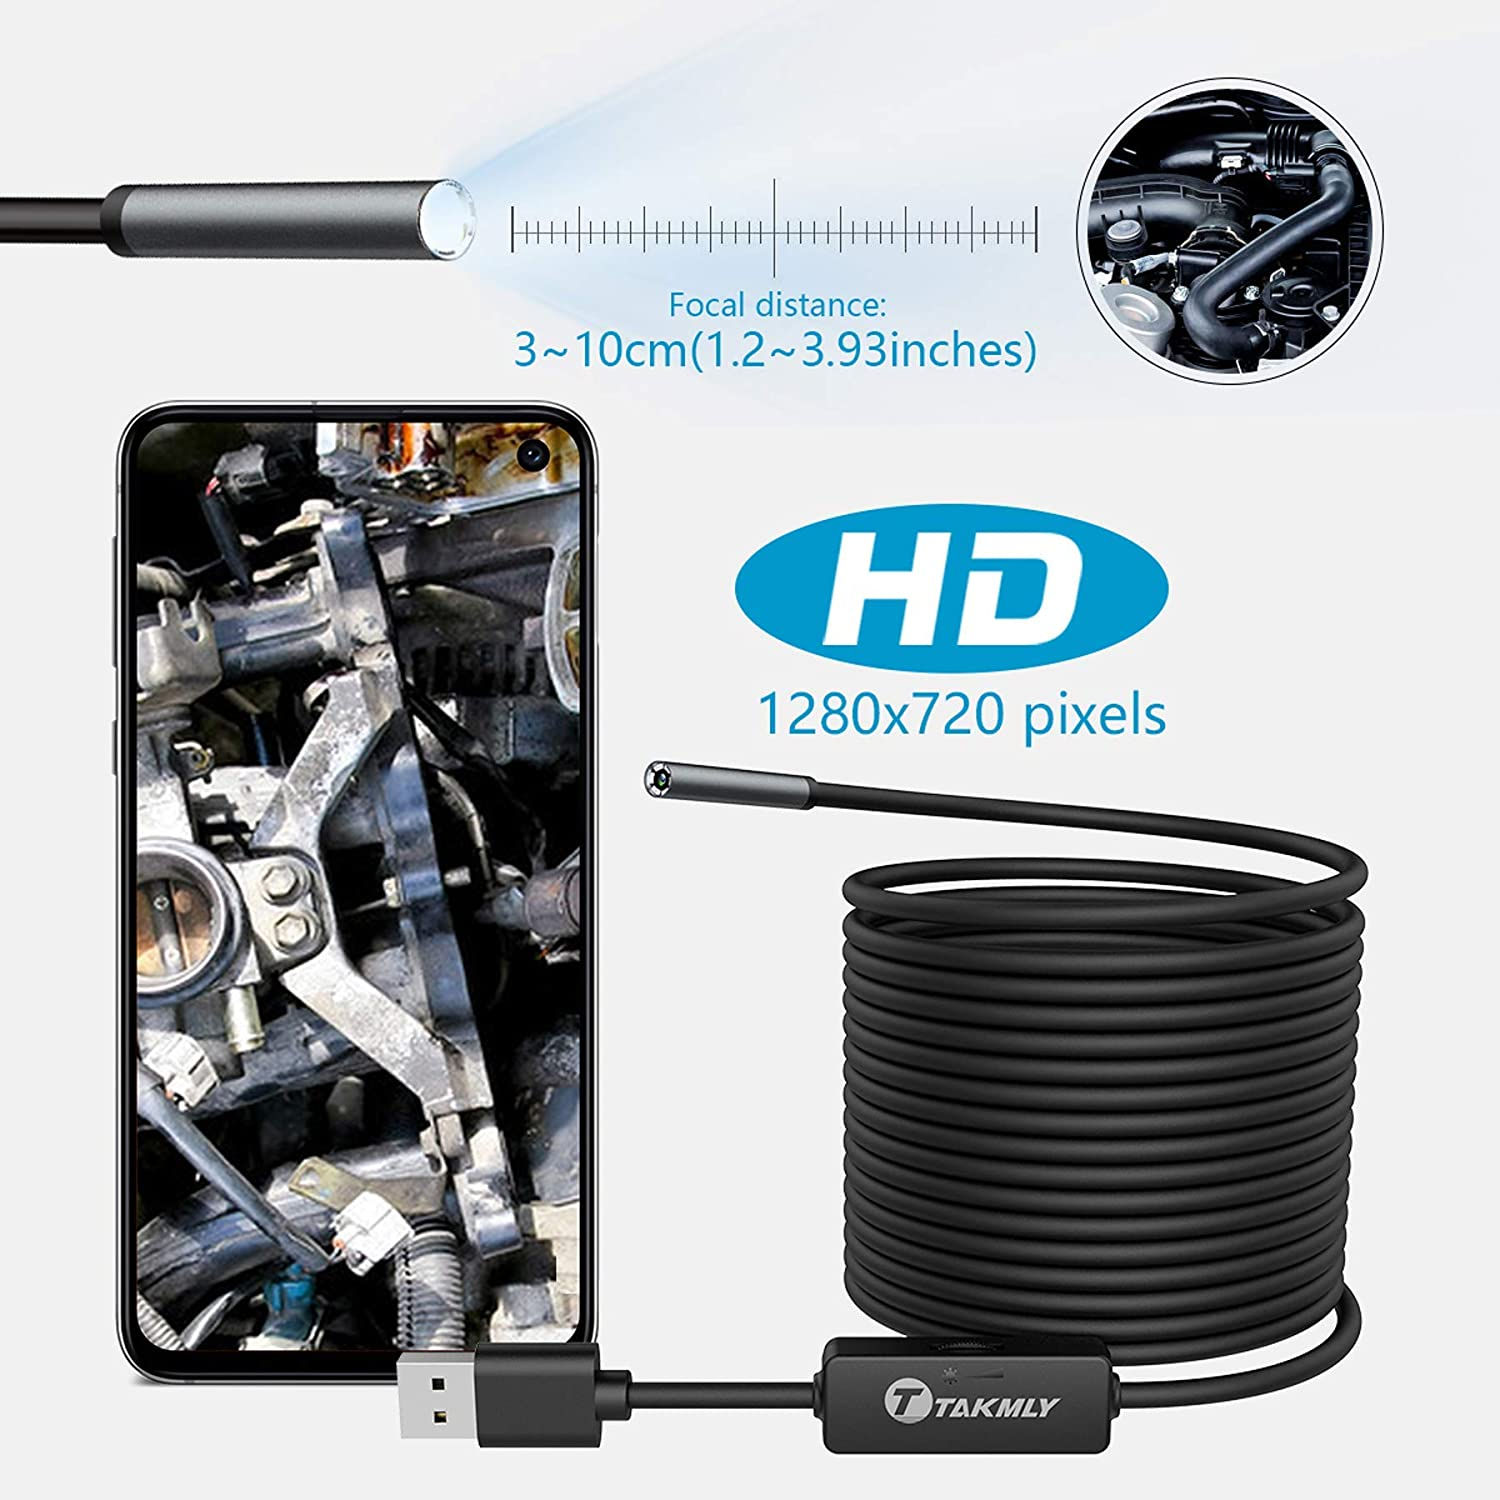 Best camera for inspection